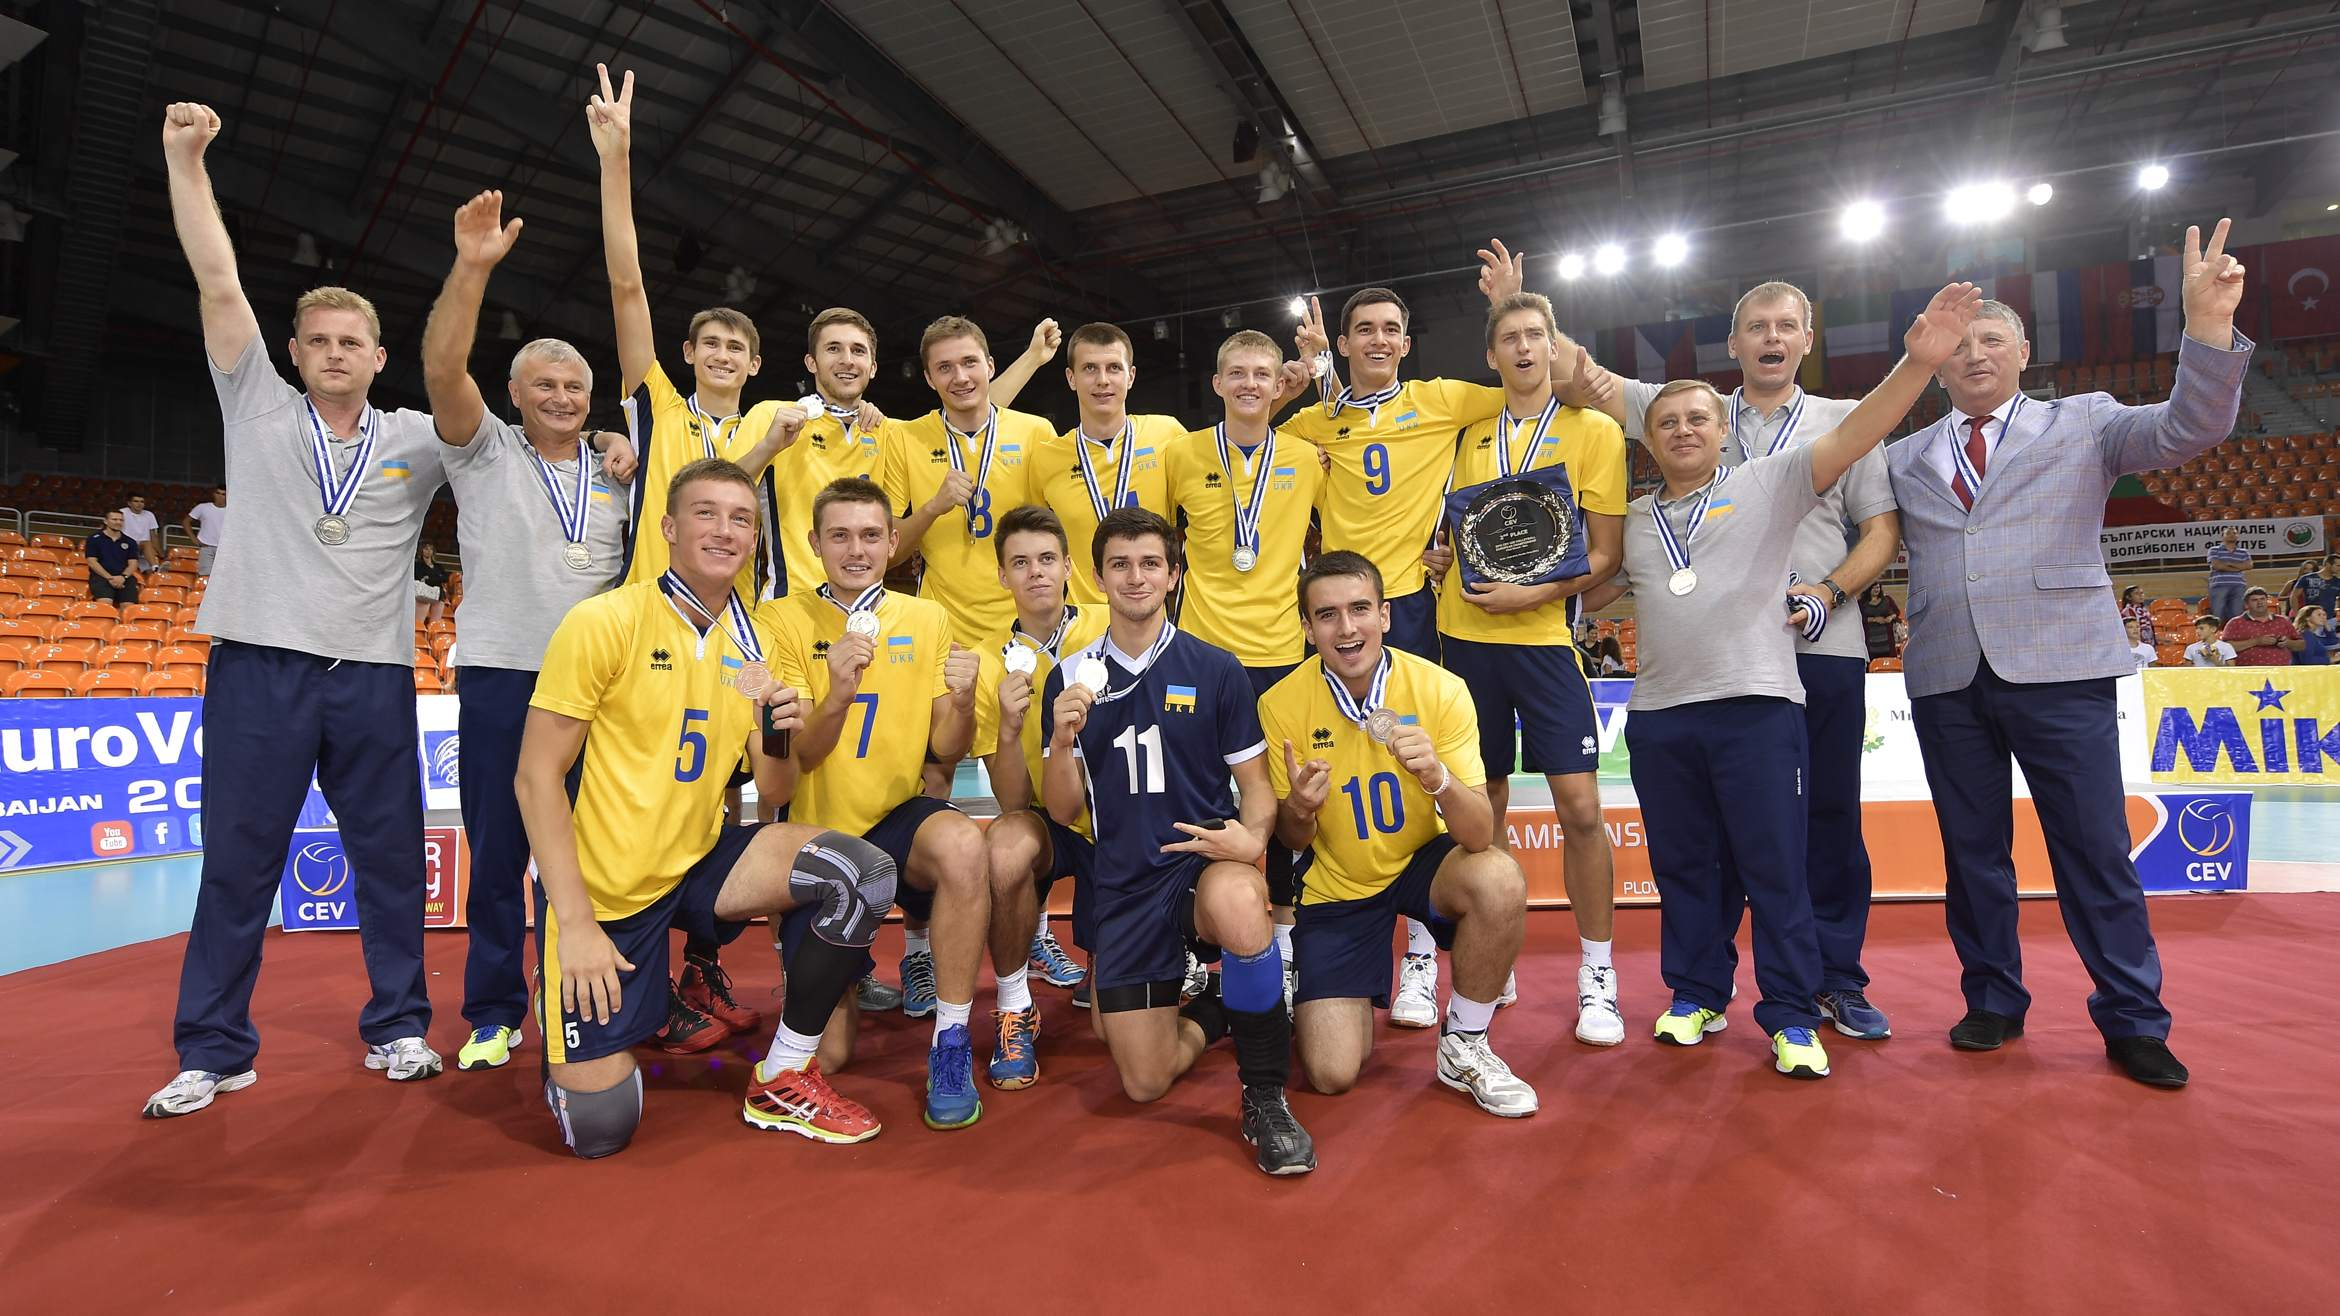 ukr-team-man-u21-2016.jpg (415.39 Kb)